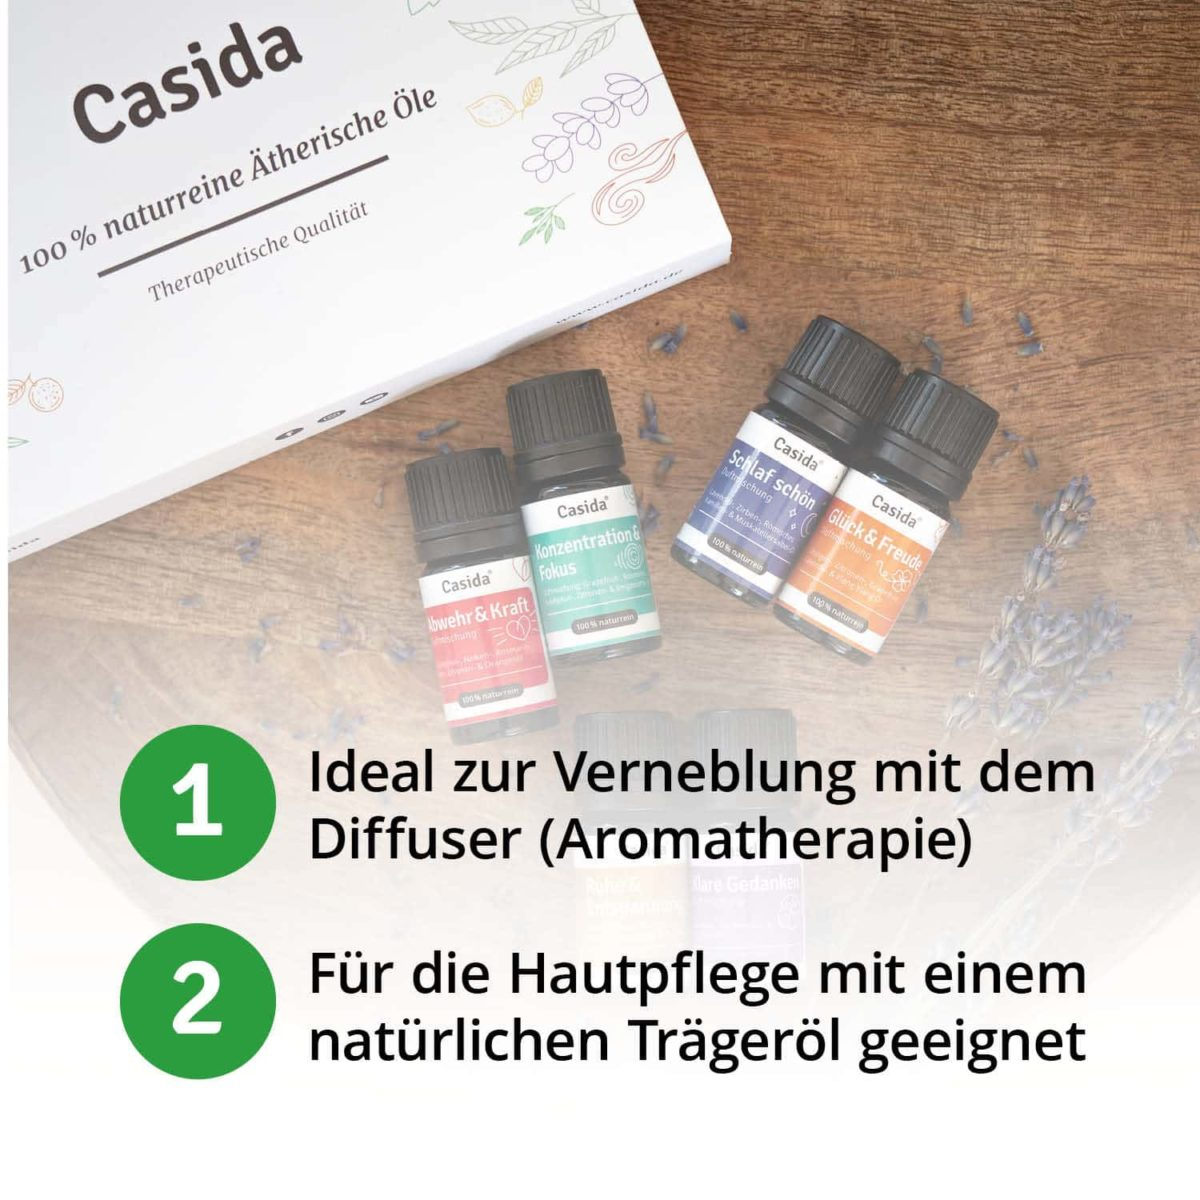 Casida TOP 6 Essential Oil Blends Box Set (each 5 ml) 17582437 PZN pharmacy oil blends aromatherapy aroma diffuser